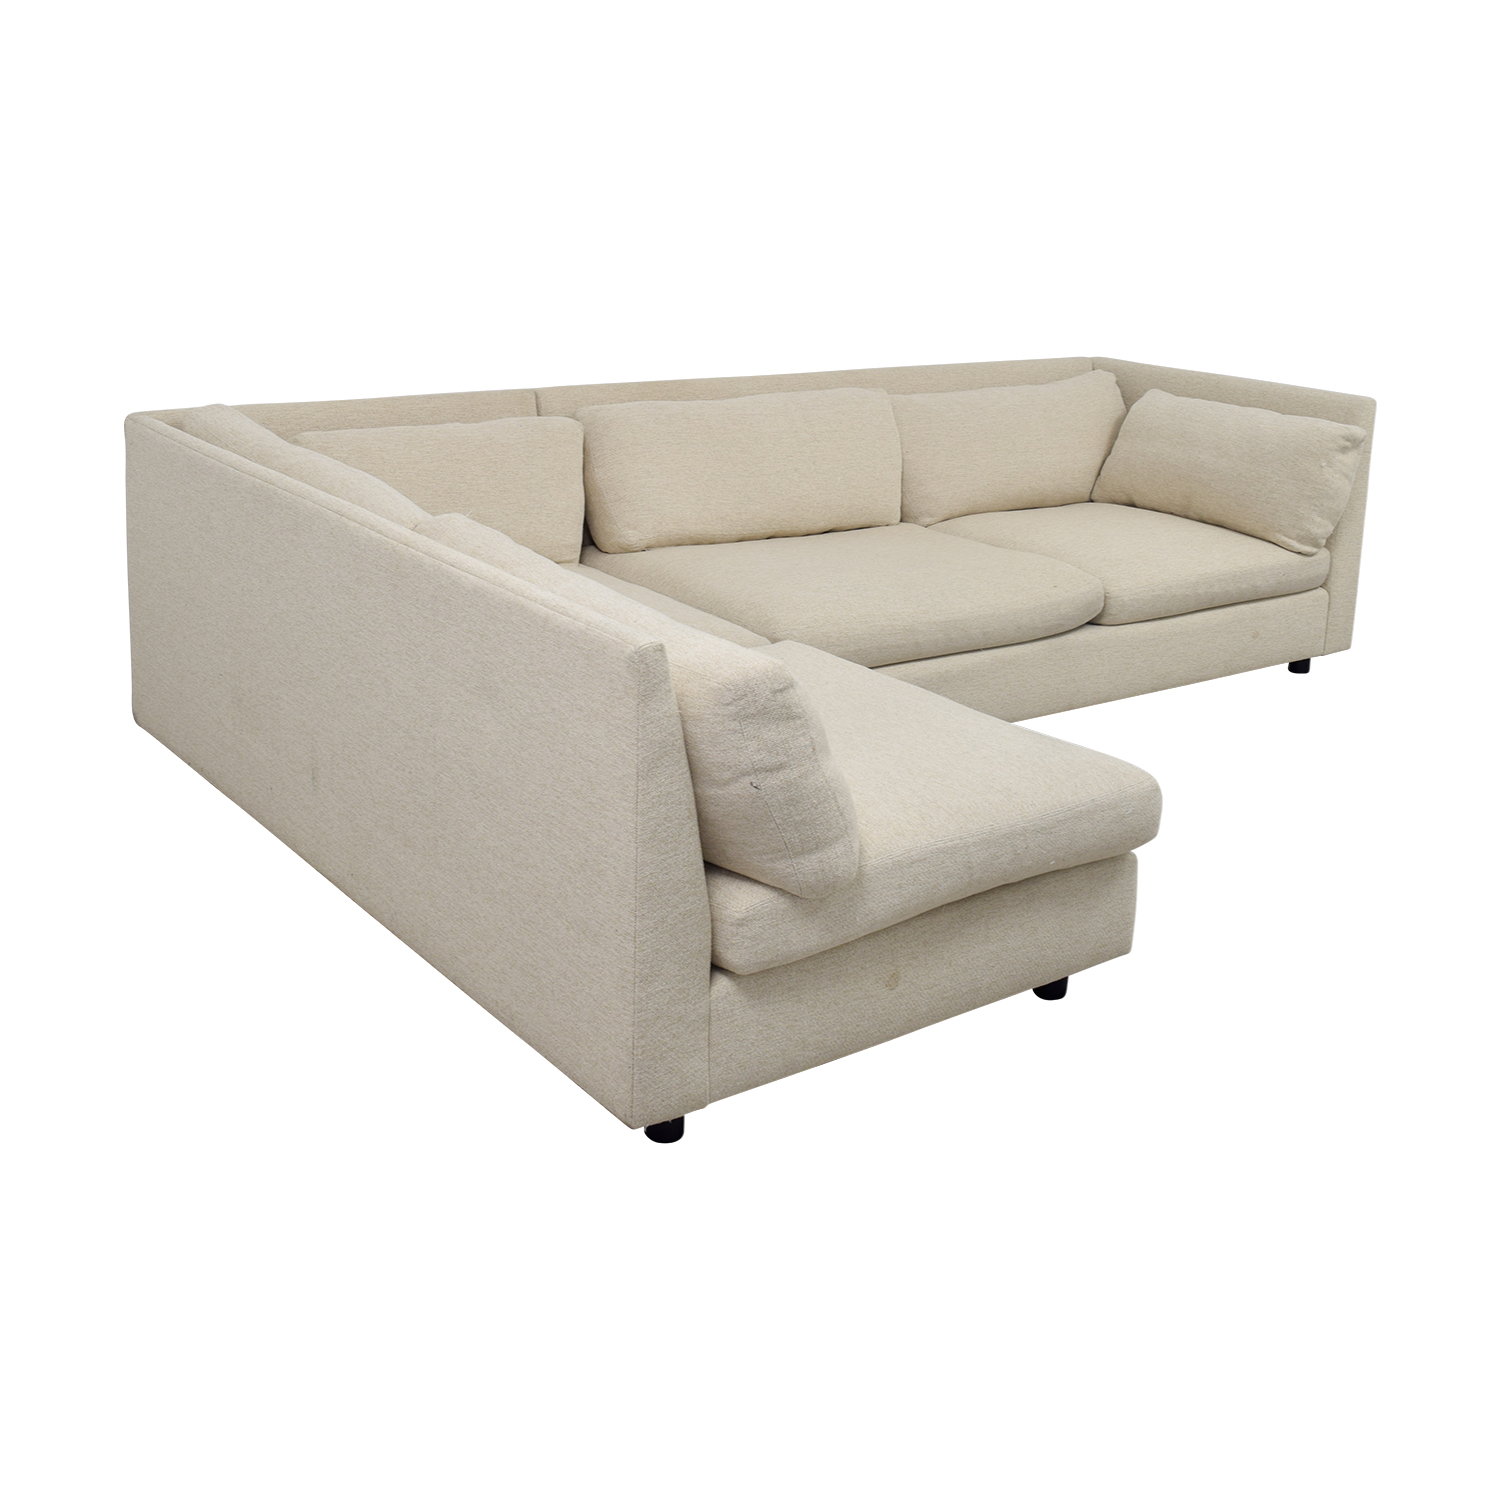 Mitchell Gold + Bob Williams Mitchell Gold + Bob Williams Beige L-Shaped Sectional discount